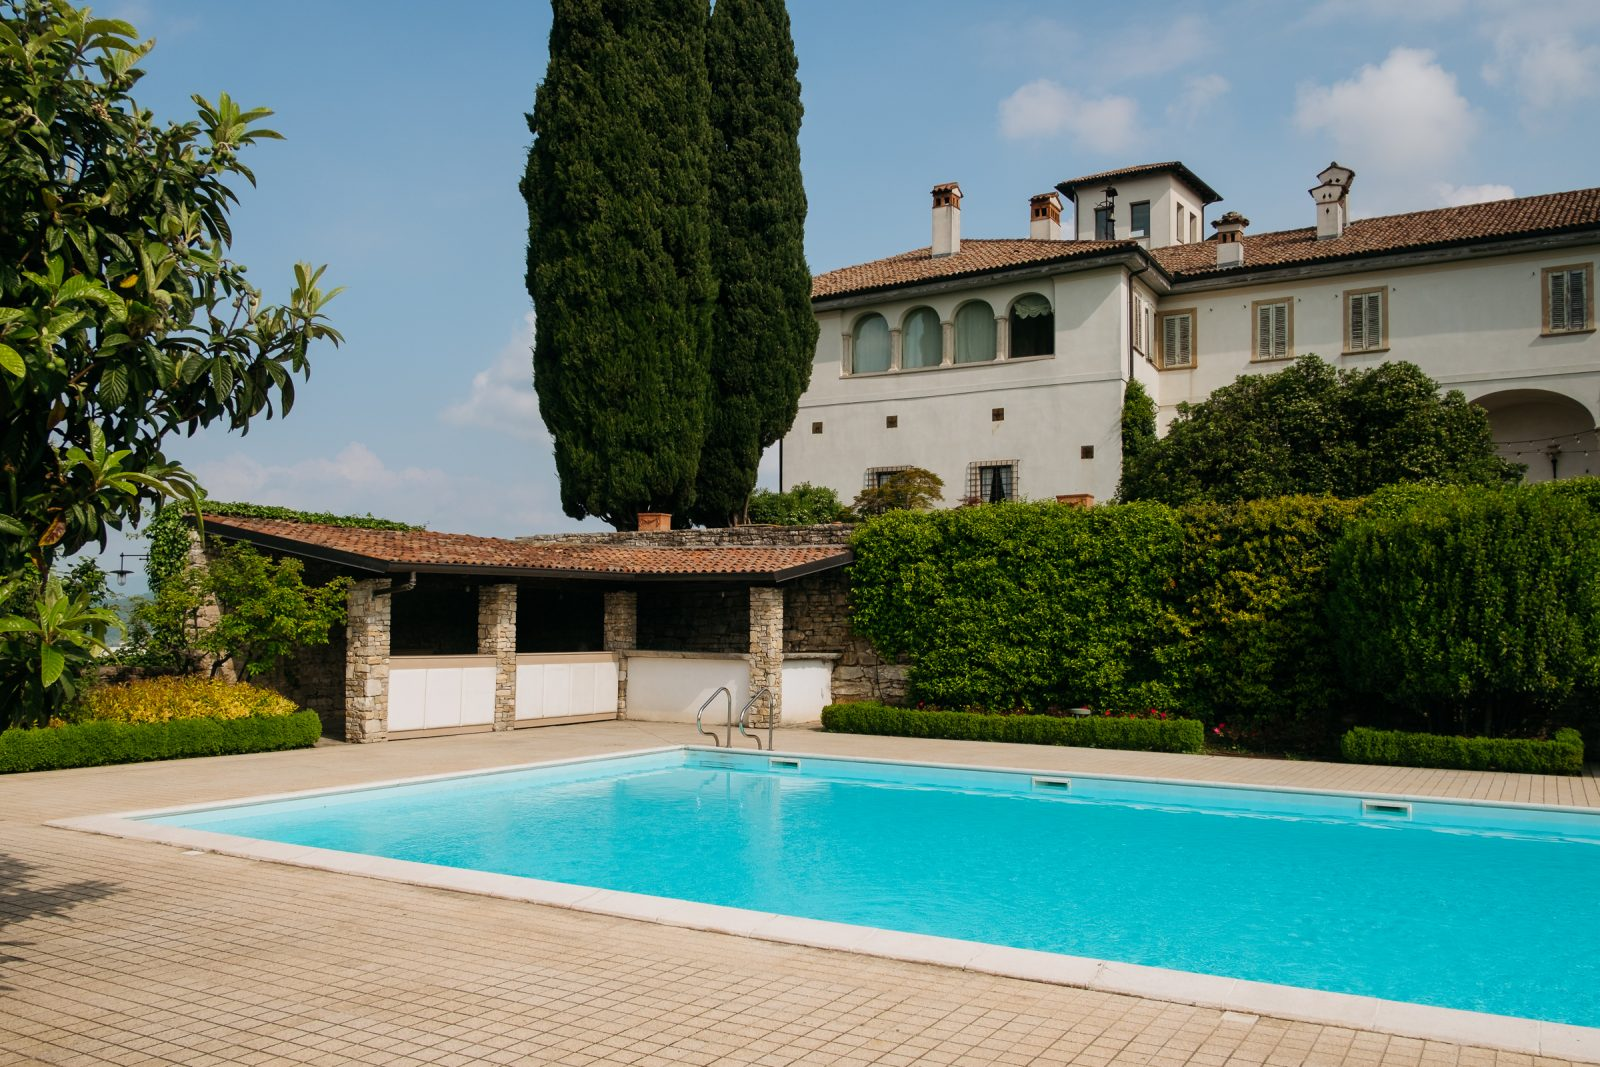 wedding photographer in bergamo. pool in castello degli angeli